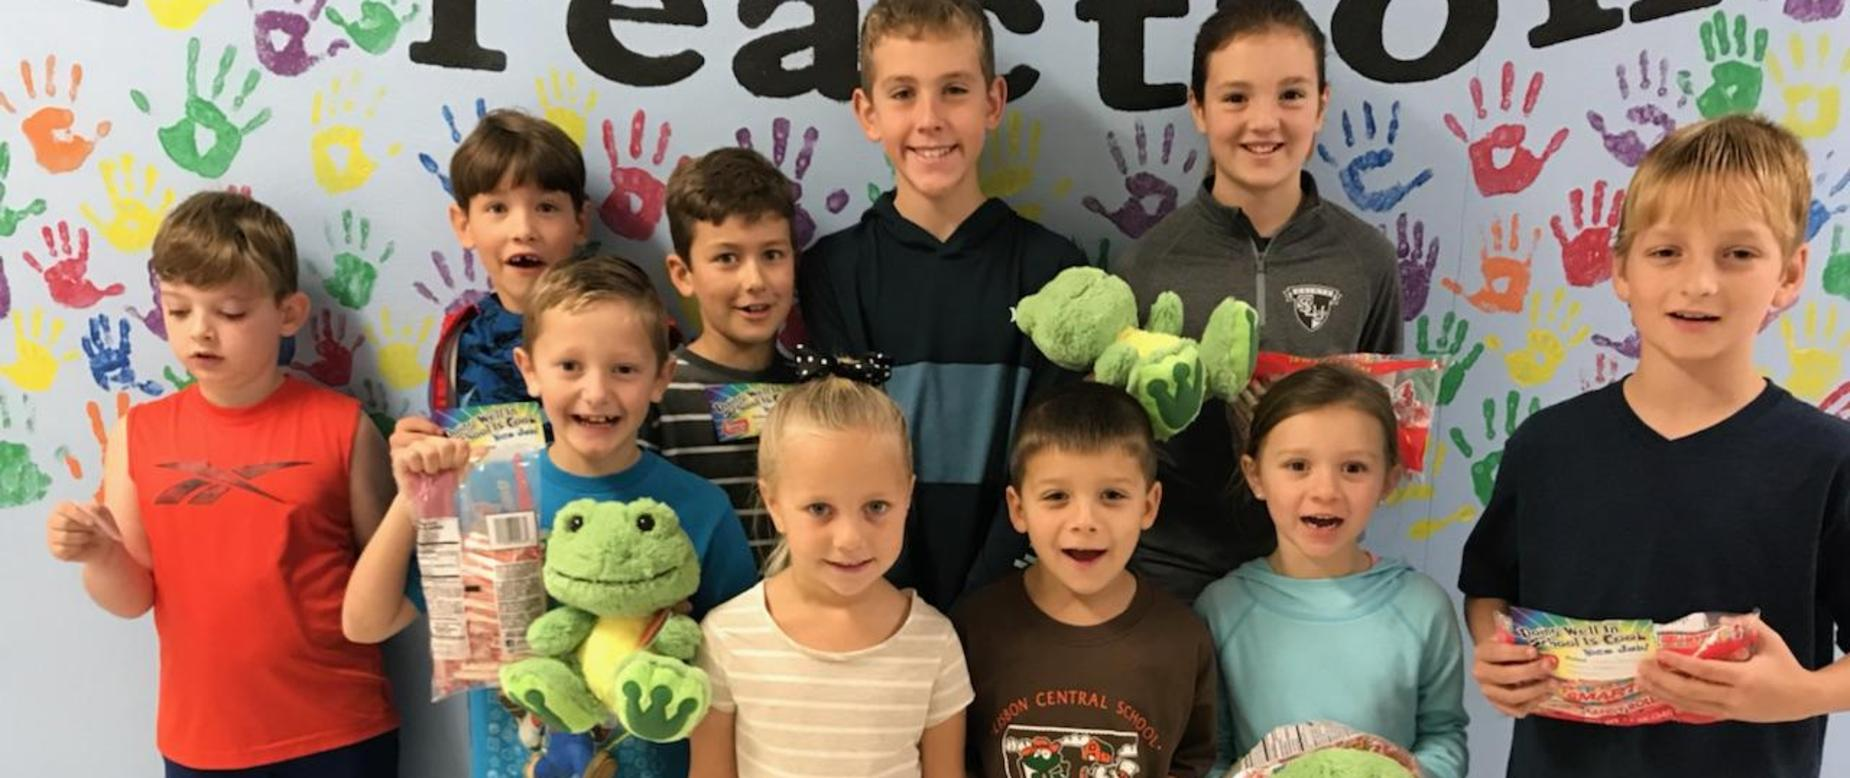 group of about ten elementary students stand together holding stuffed animal frogs